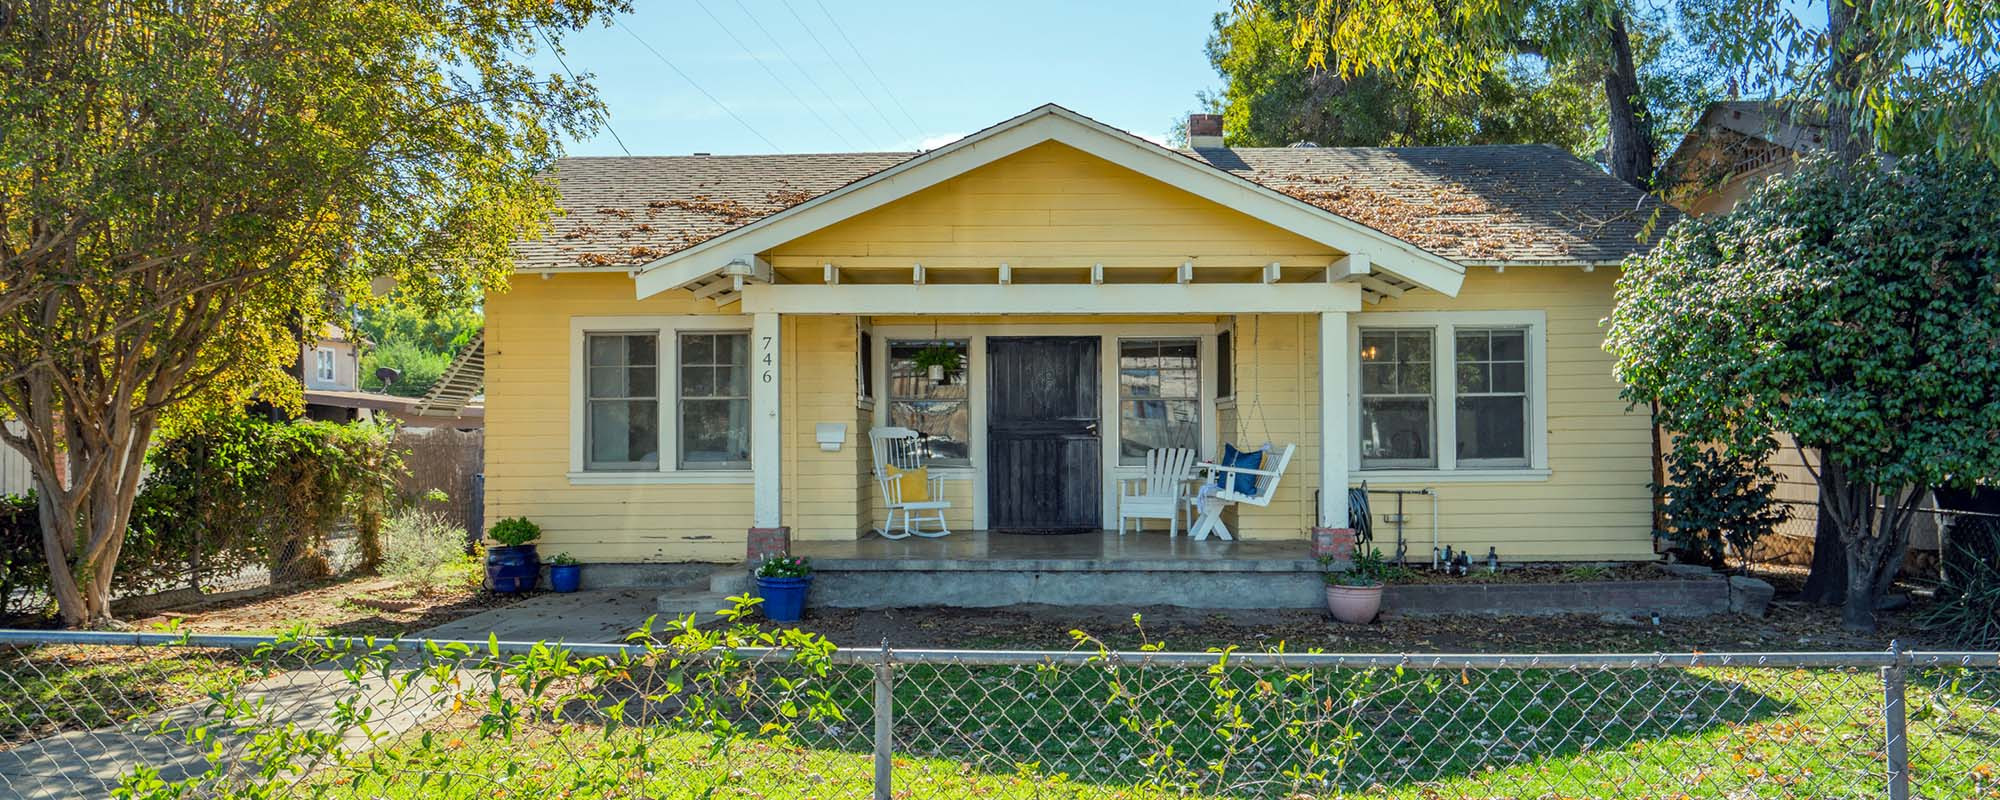 746 Laurel Avenue Pomona 91768